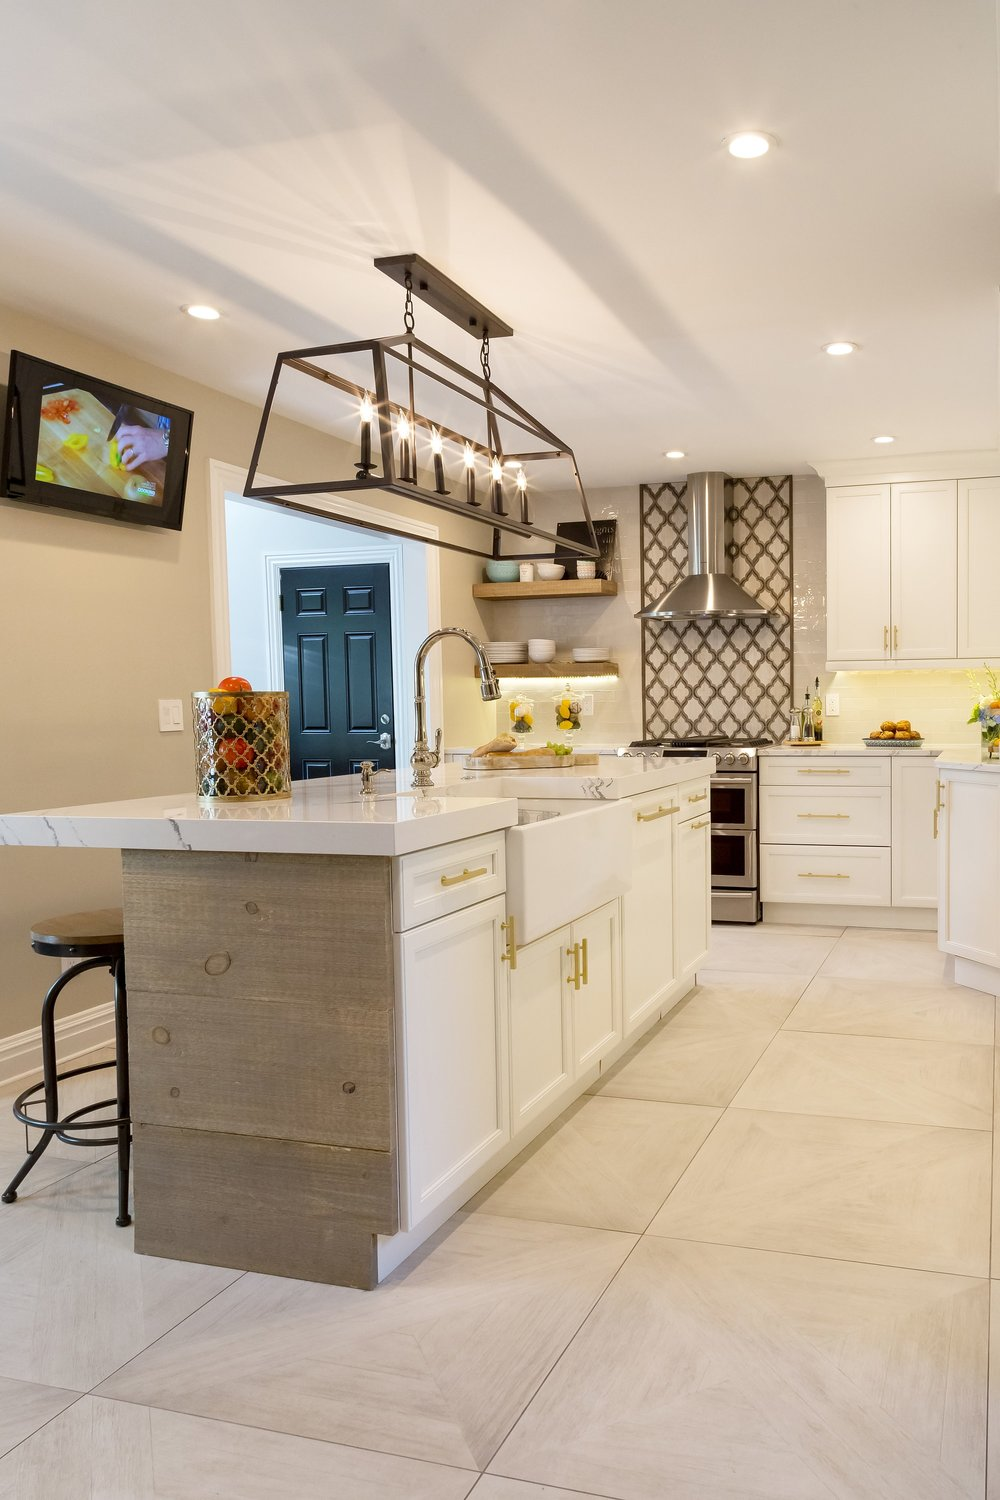 Transitional style kitchen with stylish candle chandelier